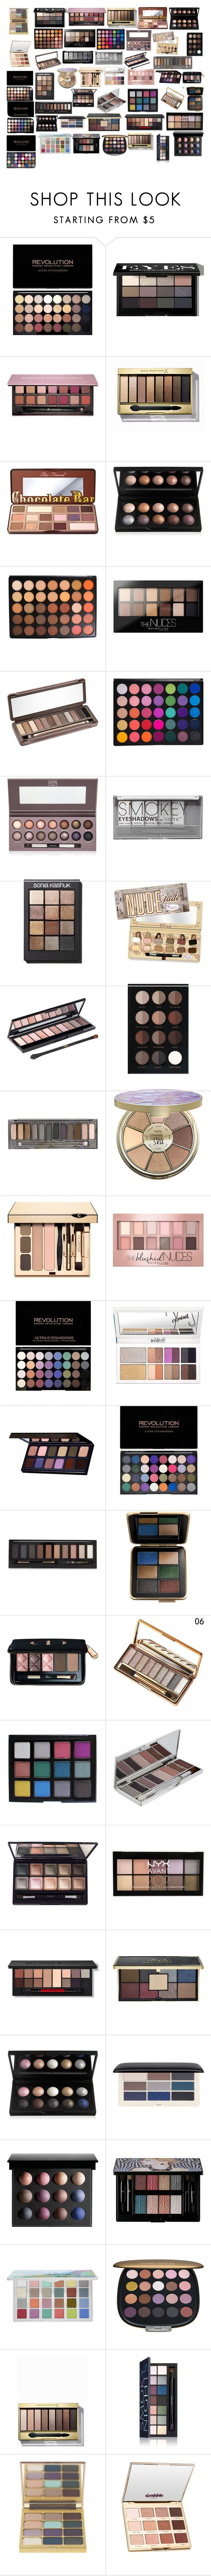 """göz farları"" by mervenara on Polyvore featuring moda, Bobbi Brown Cosmetics, Anastasia Beverly Hills, Max Factor, Too Faced Cosmetics, Morphe, Maybelline, Urban Decay, Laura Geller ve Boohoo"